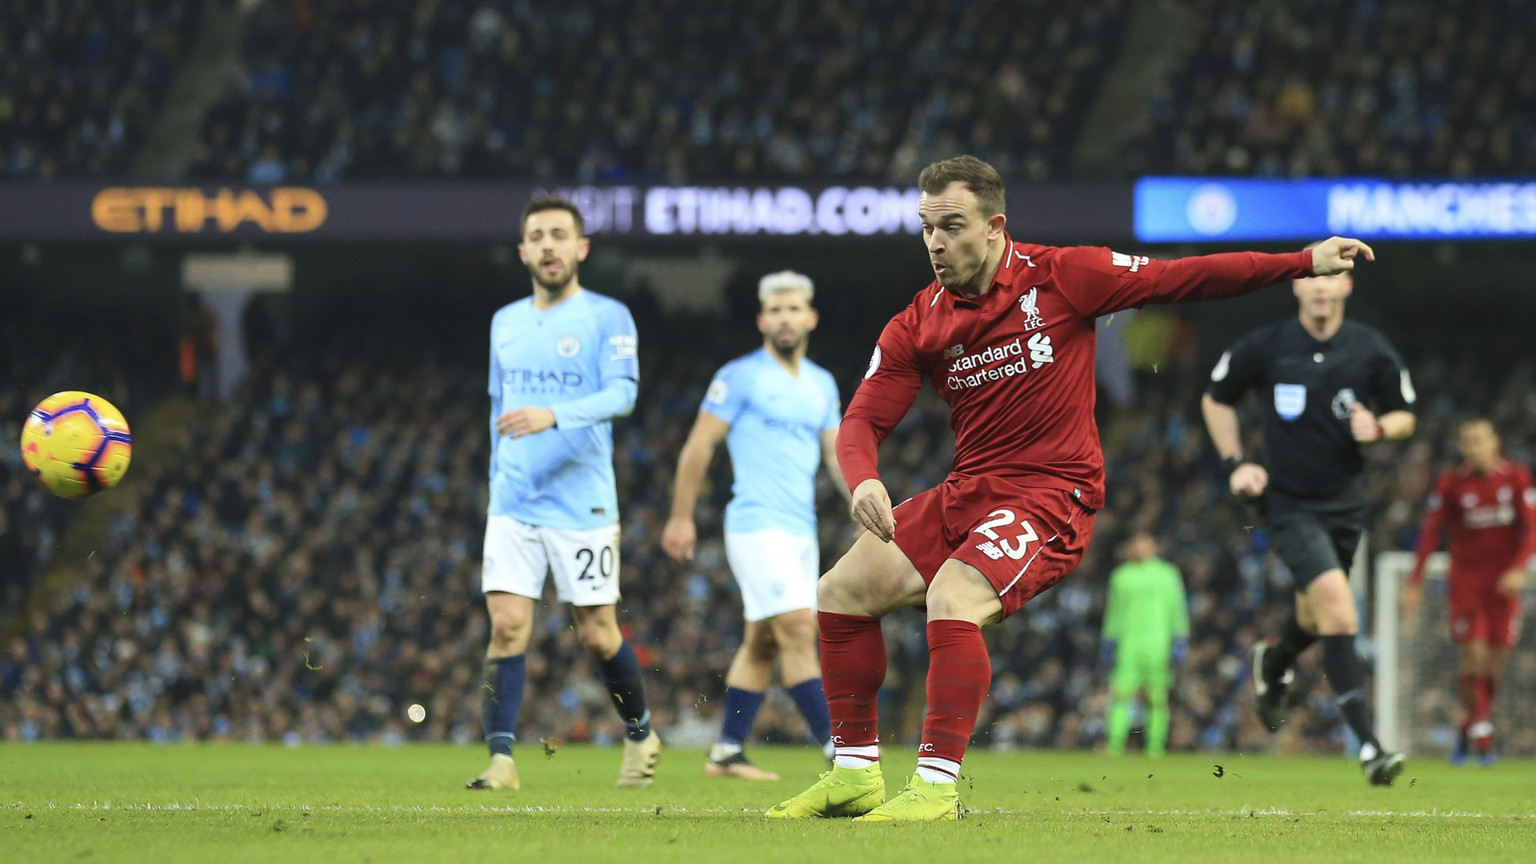 Liverpool's Xherdan Shaqiri shots at goal during their English Premier League soccer match between Manchester City and Liverpool at the Ethiad stadium, Manchester England, Thursday, Jan. 3, 2019. (AP Photo/Jon Super)